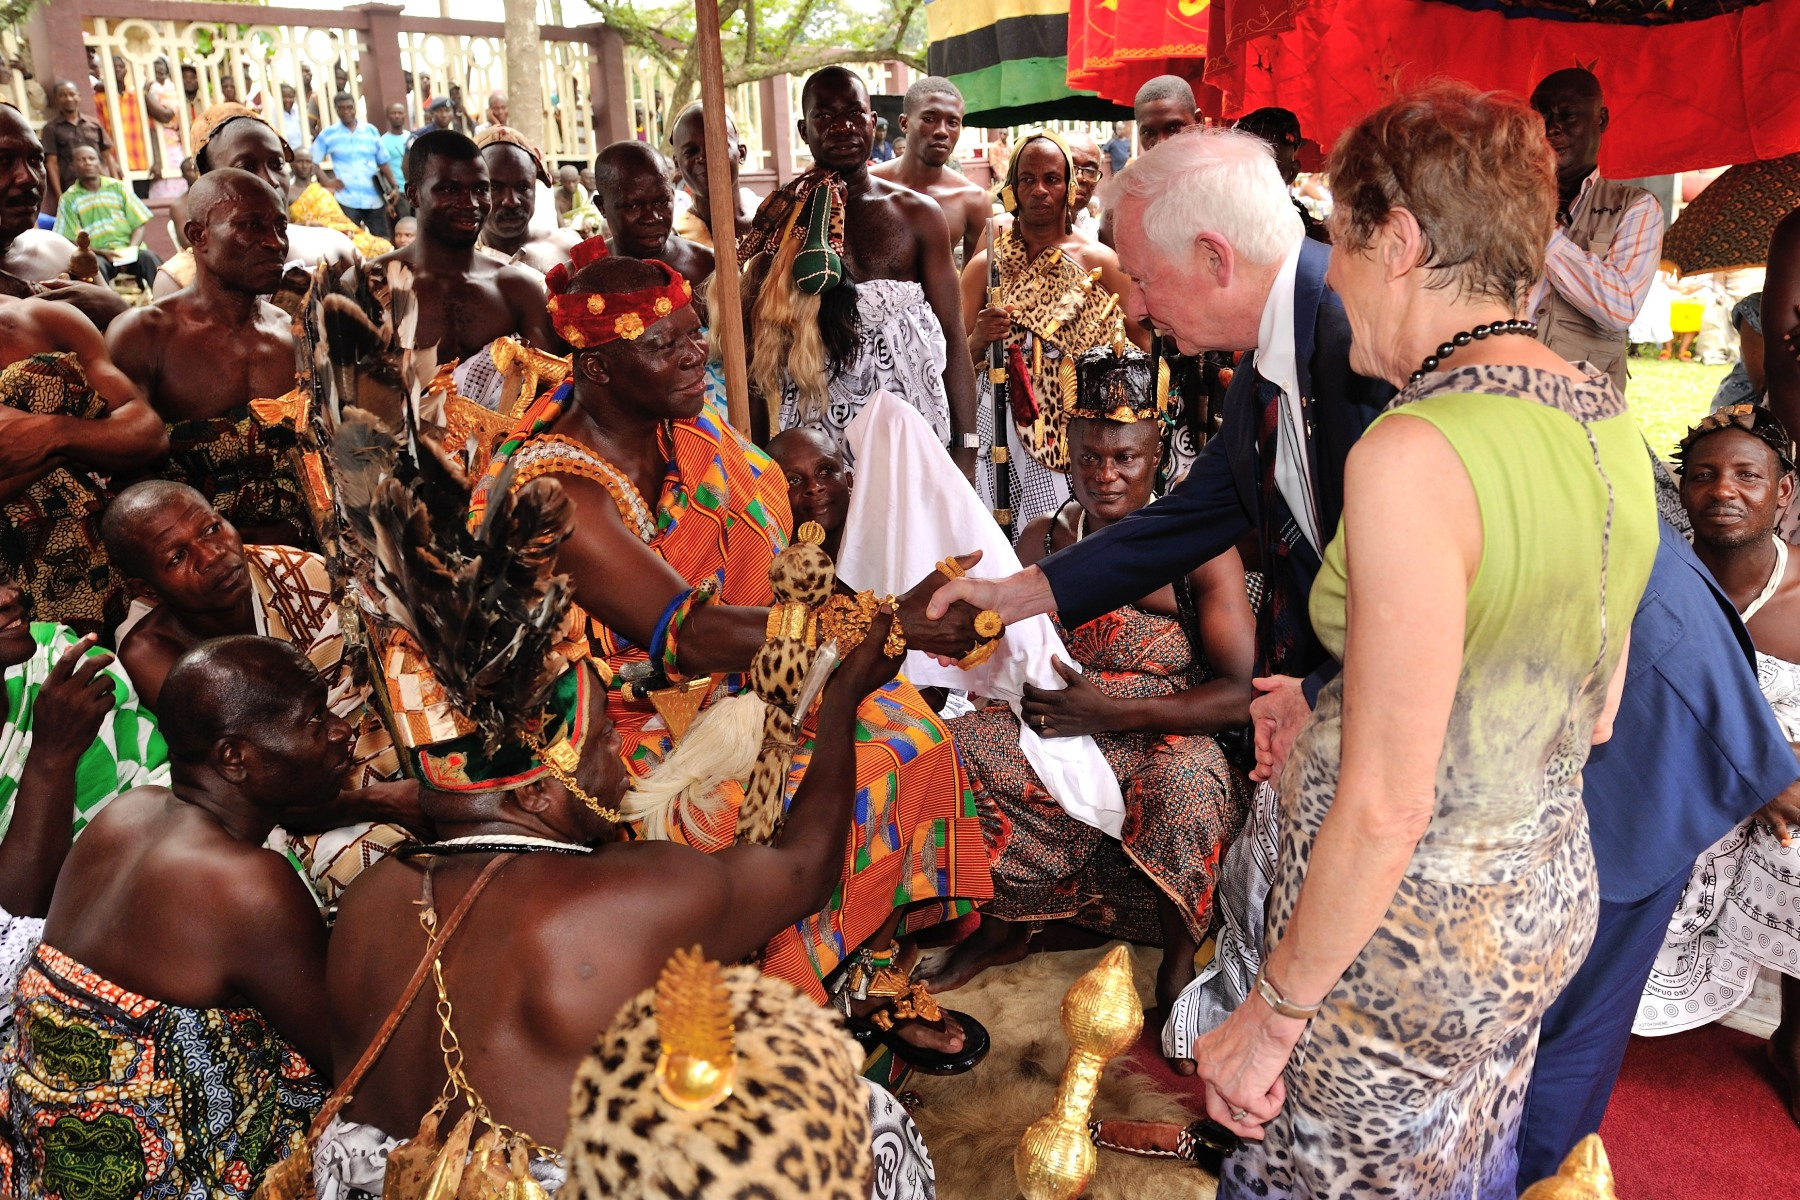 Their Excellencies met Otumfuo Osei Tutu II, 16th King of the Kingdom of Ashanti, during the durbar.